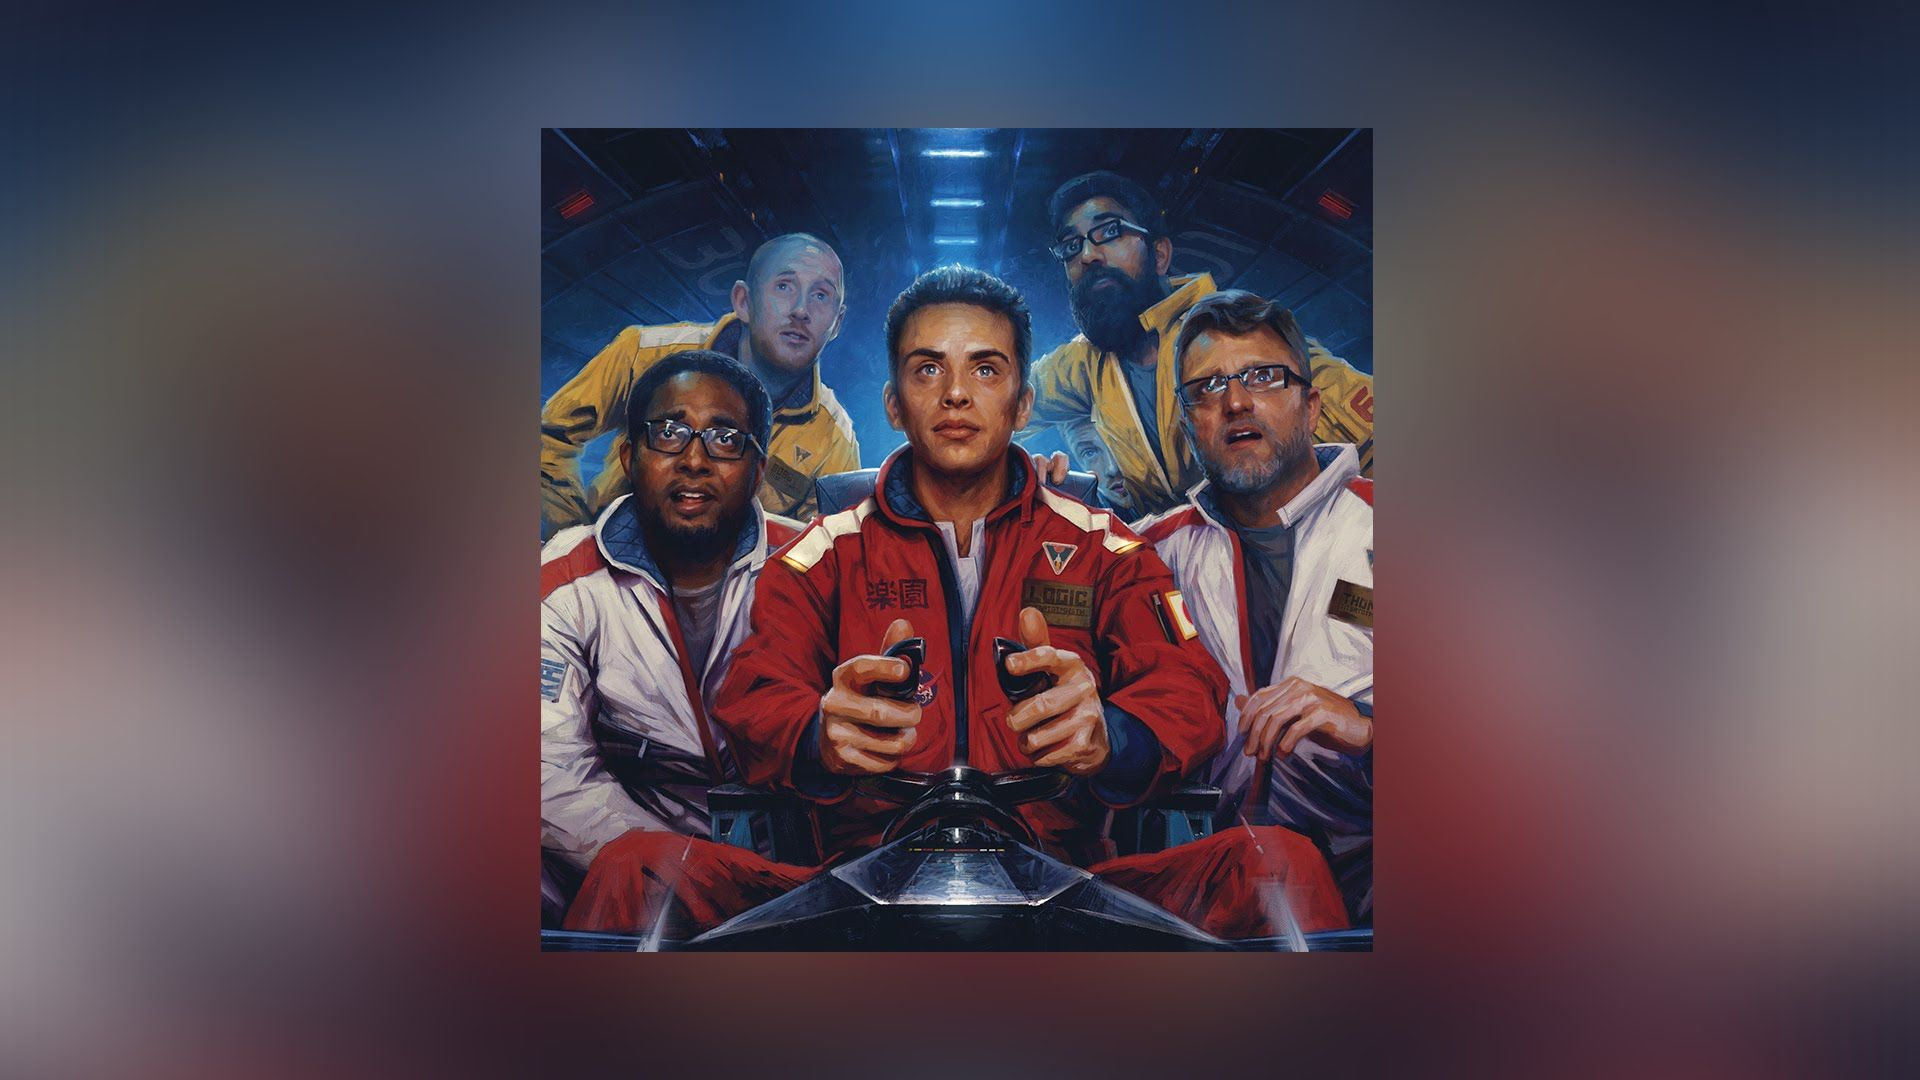 Logic The Incredible True Story Youtube Music Album Art